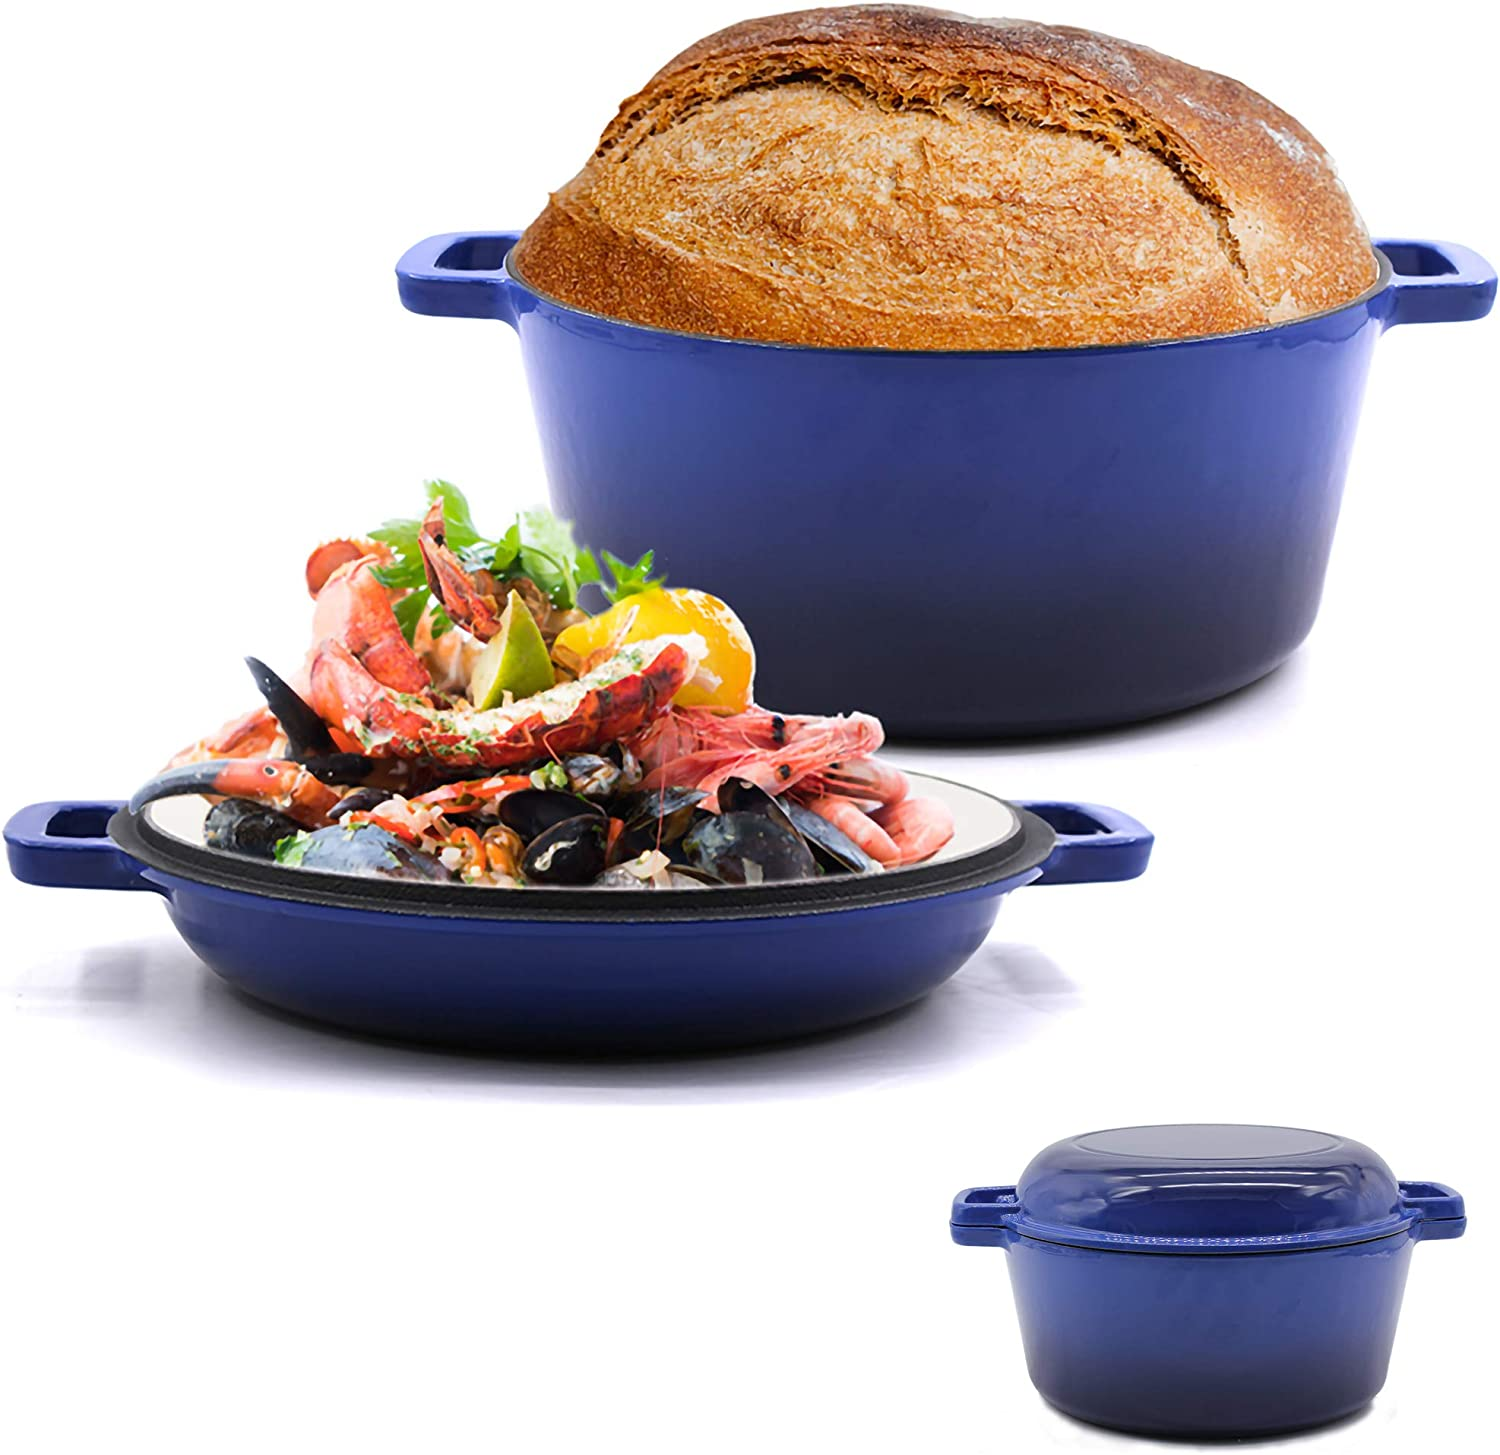 2-in-1 Enameled Cast Iron Multi Cooker, 5.5-Quart Dutch Oven with 10.5 Inch Skillet Lid Set,Use as Dutch Oven and Frying Pan,Marseille